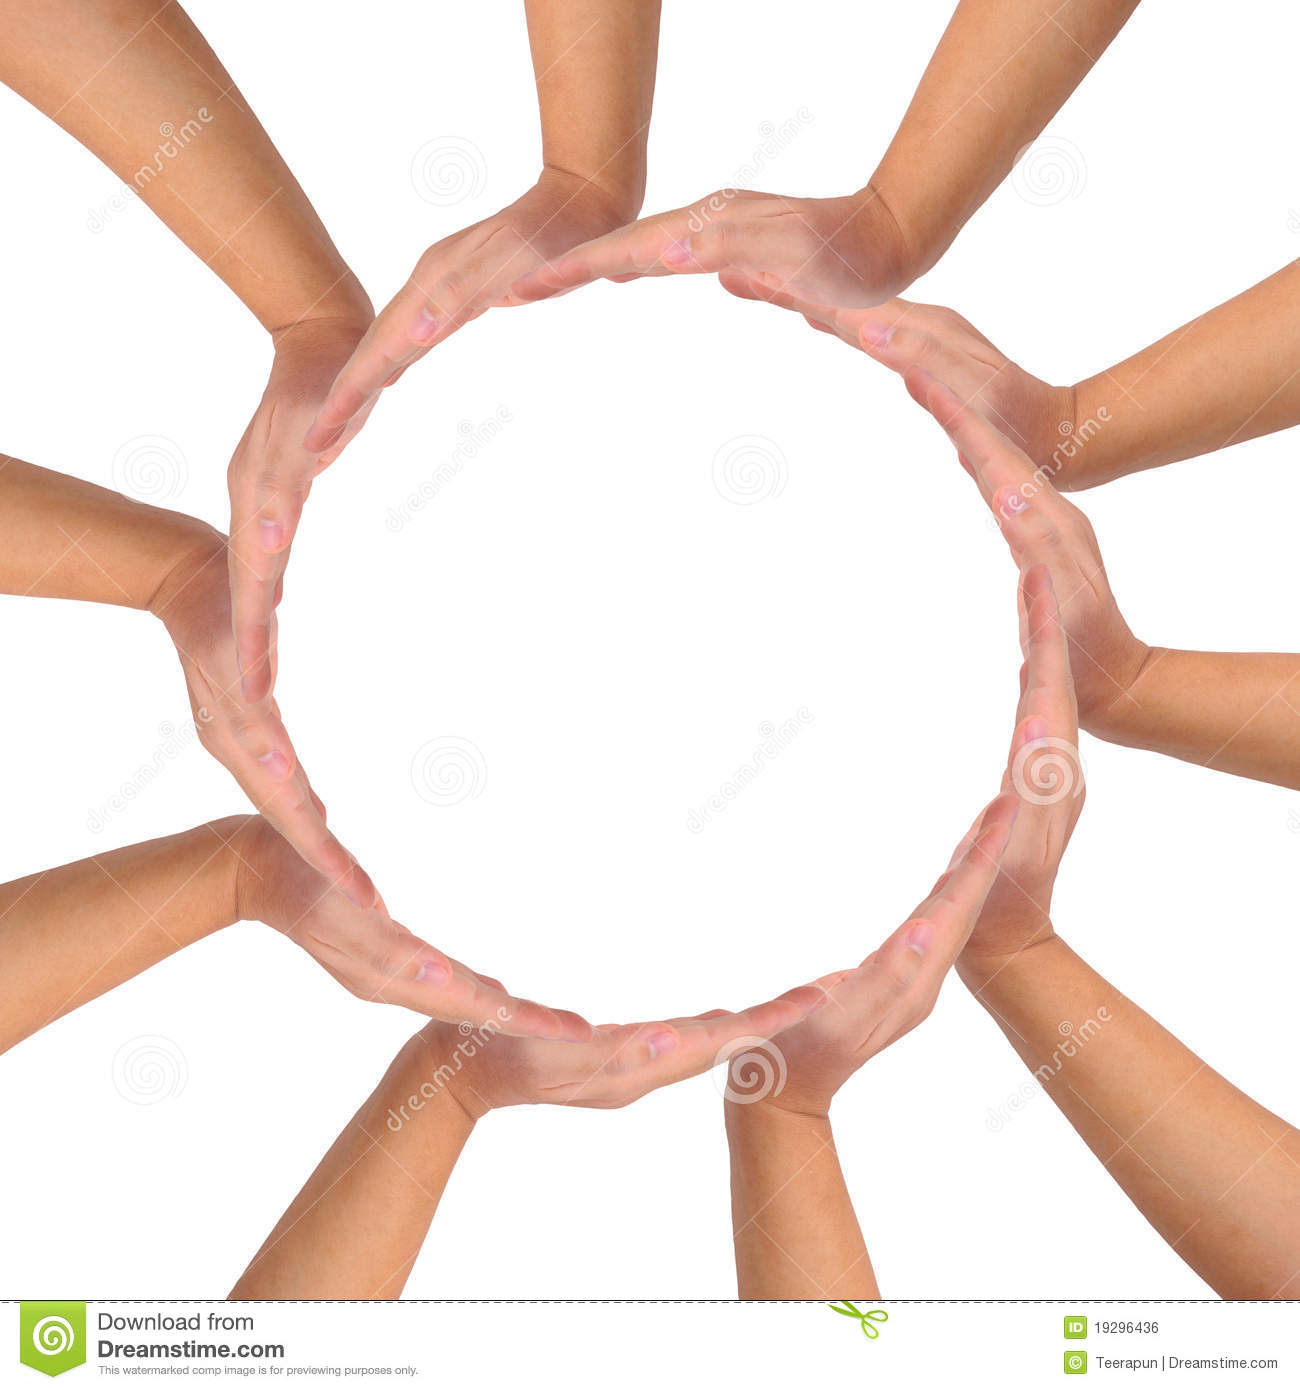 Conceptual Symbol Of Unity. Royalty Free Stock Image ...